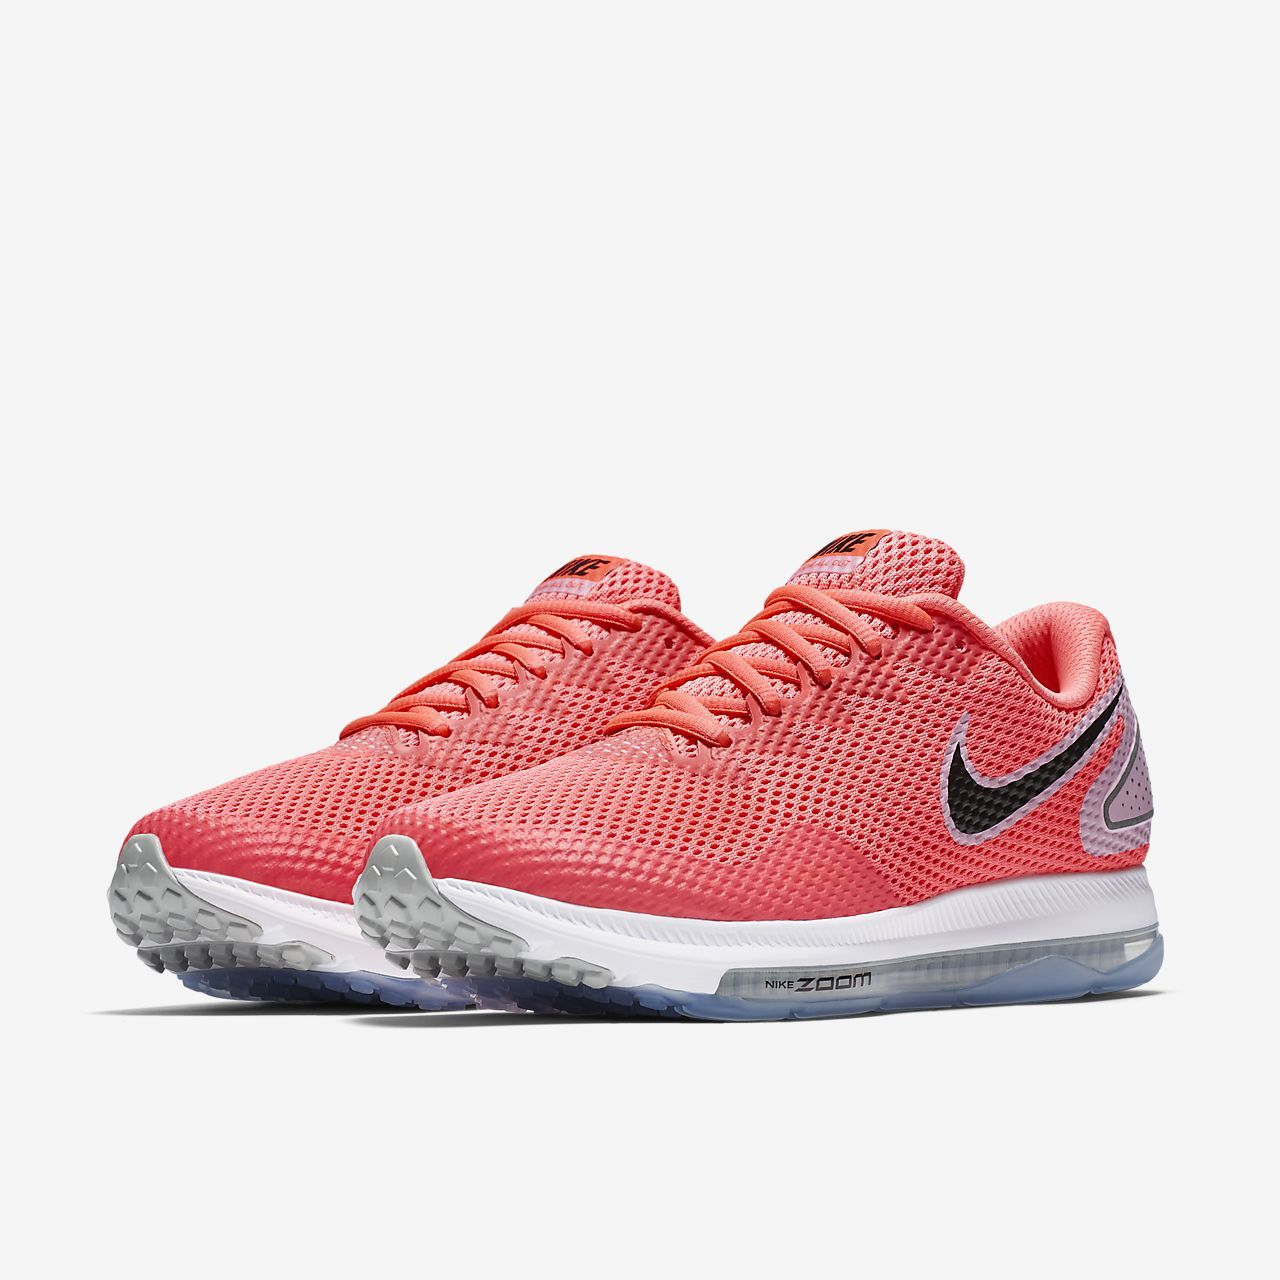 2c7fcf8482d10 Nike Zoom All Out Low 2 Women s Running Shoe Nike Zoom